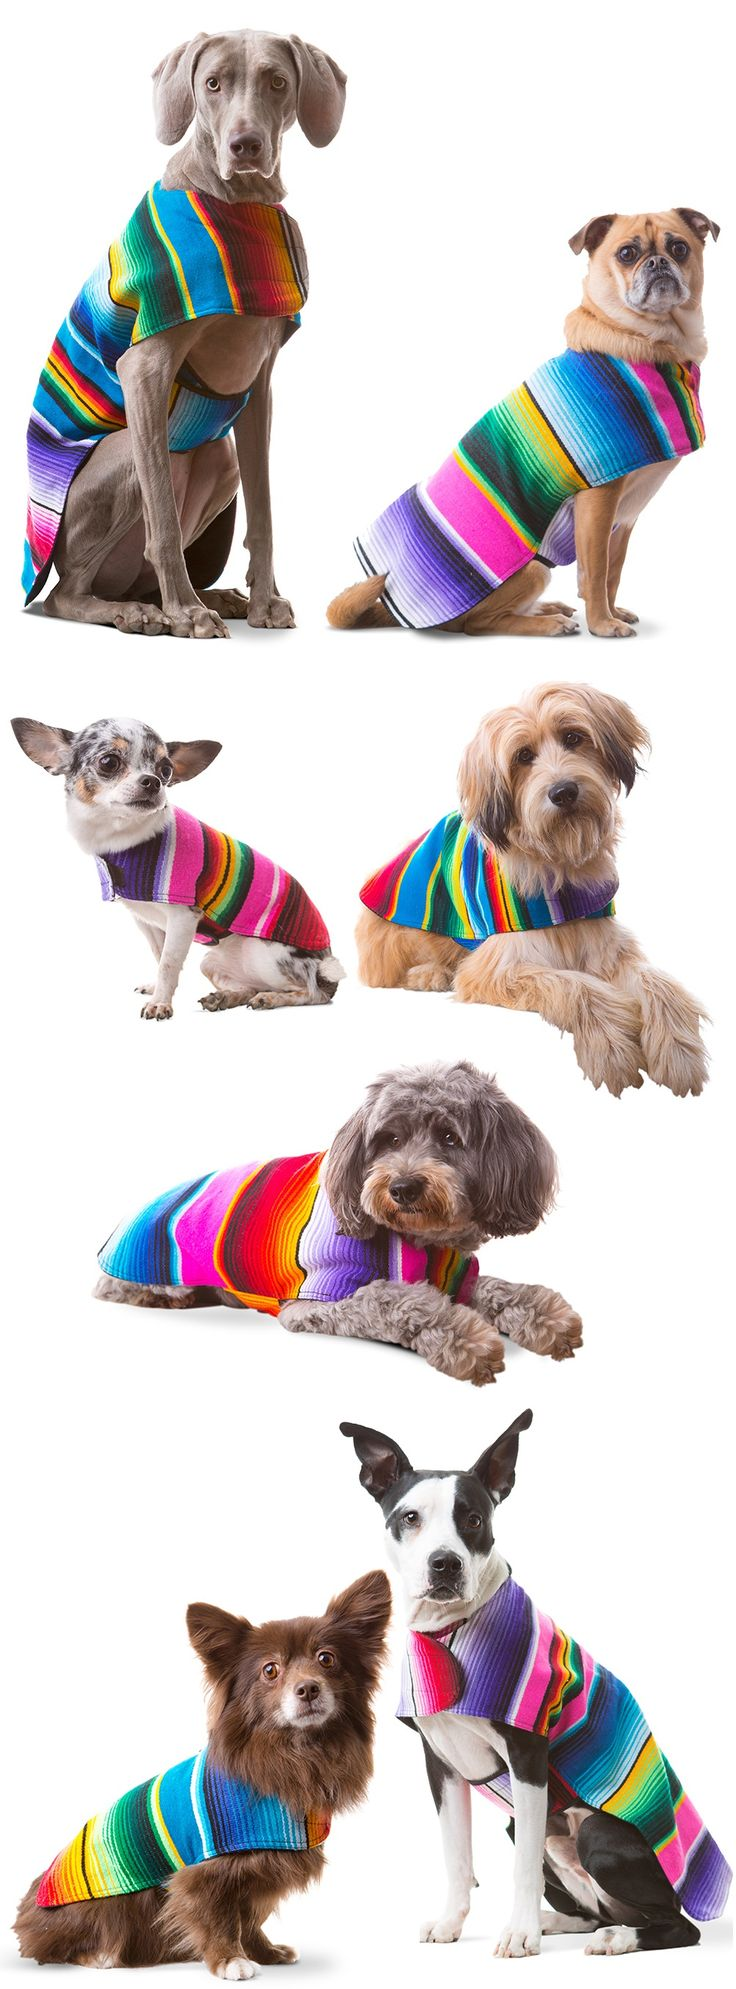 617 best dog coats images on Pinterest | Dog clothing, Dog sweater ...